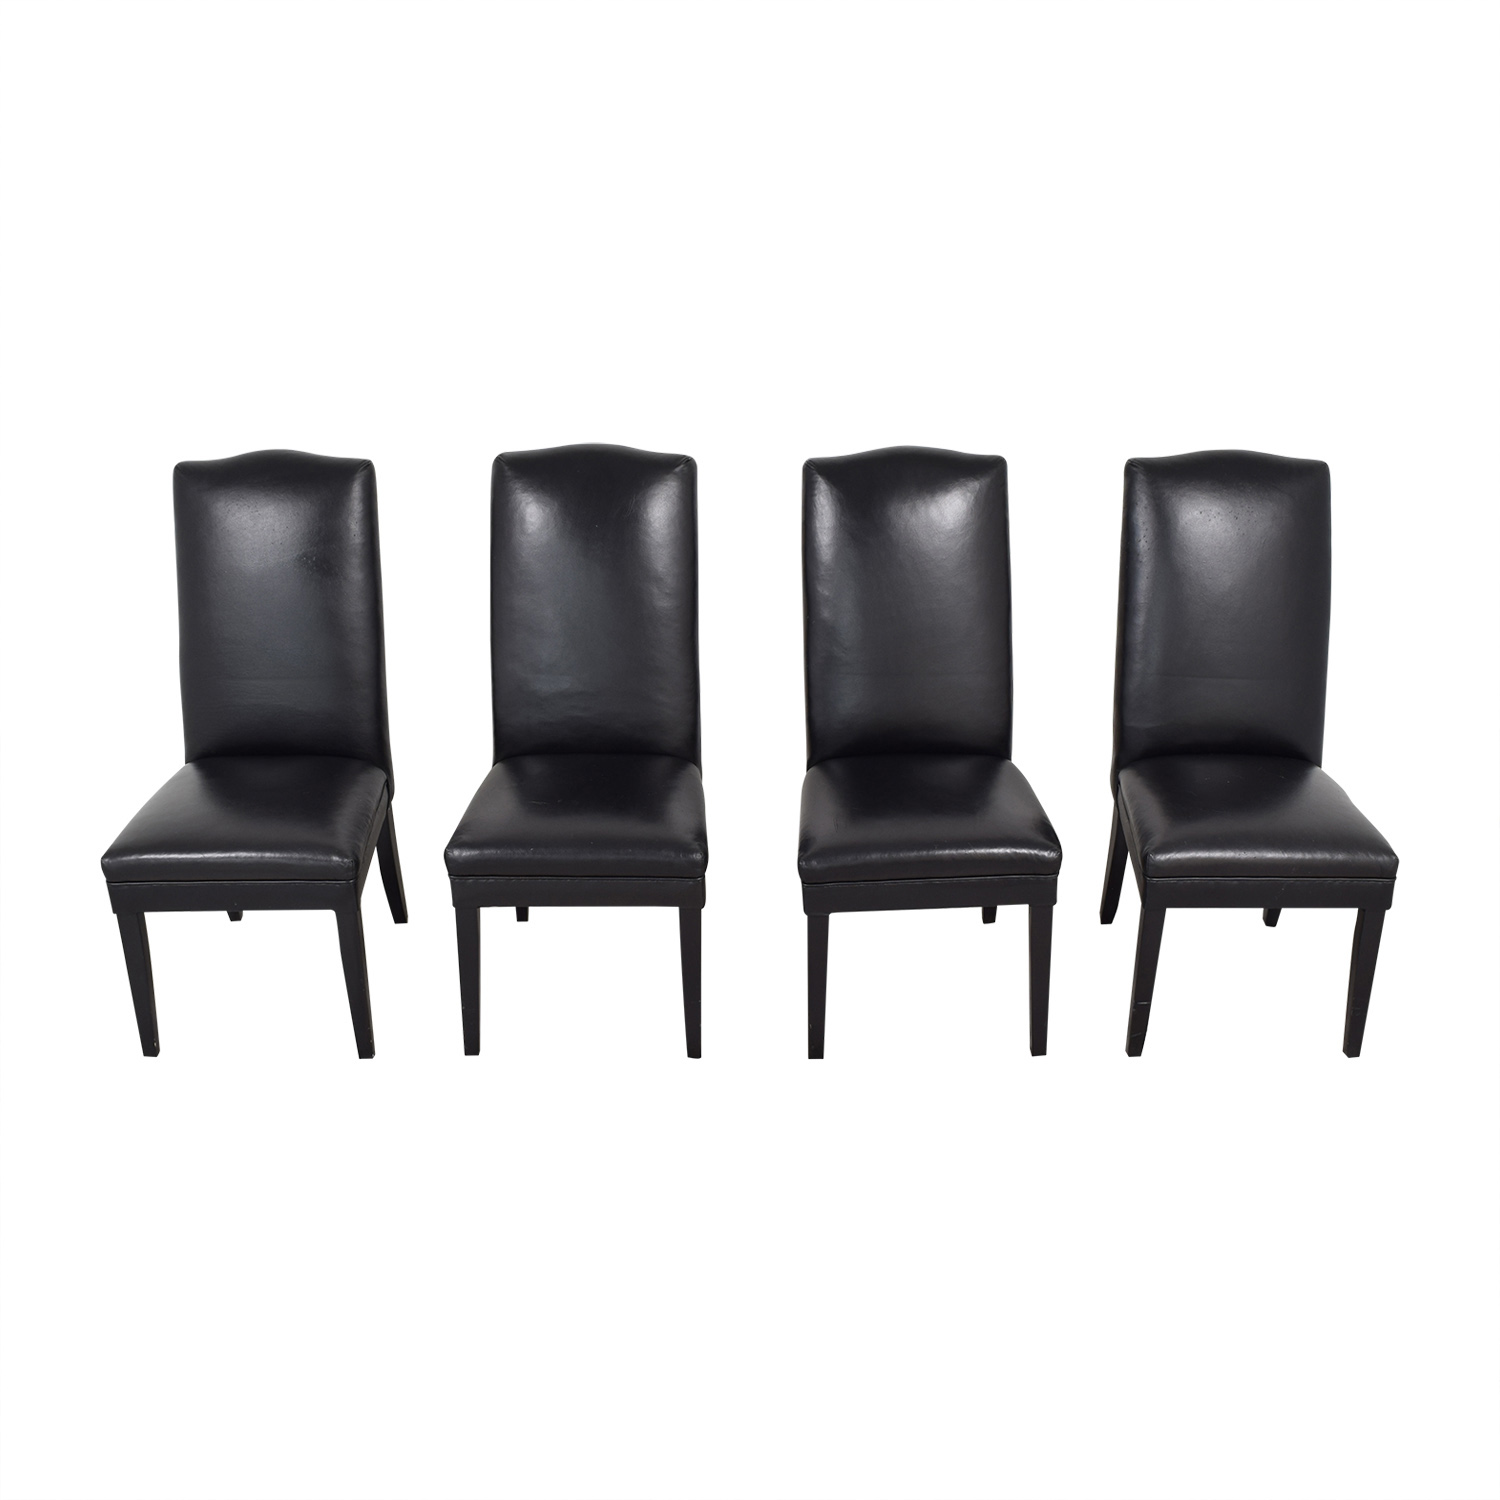 Classic Style High Back Dining Chairs